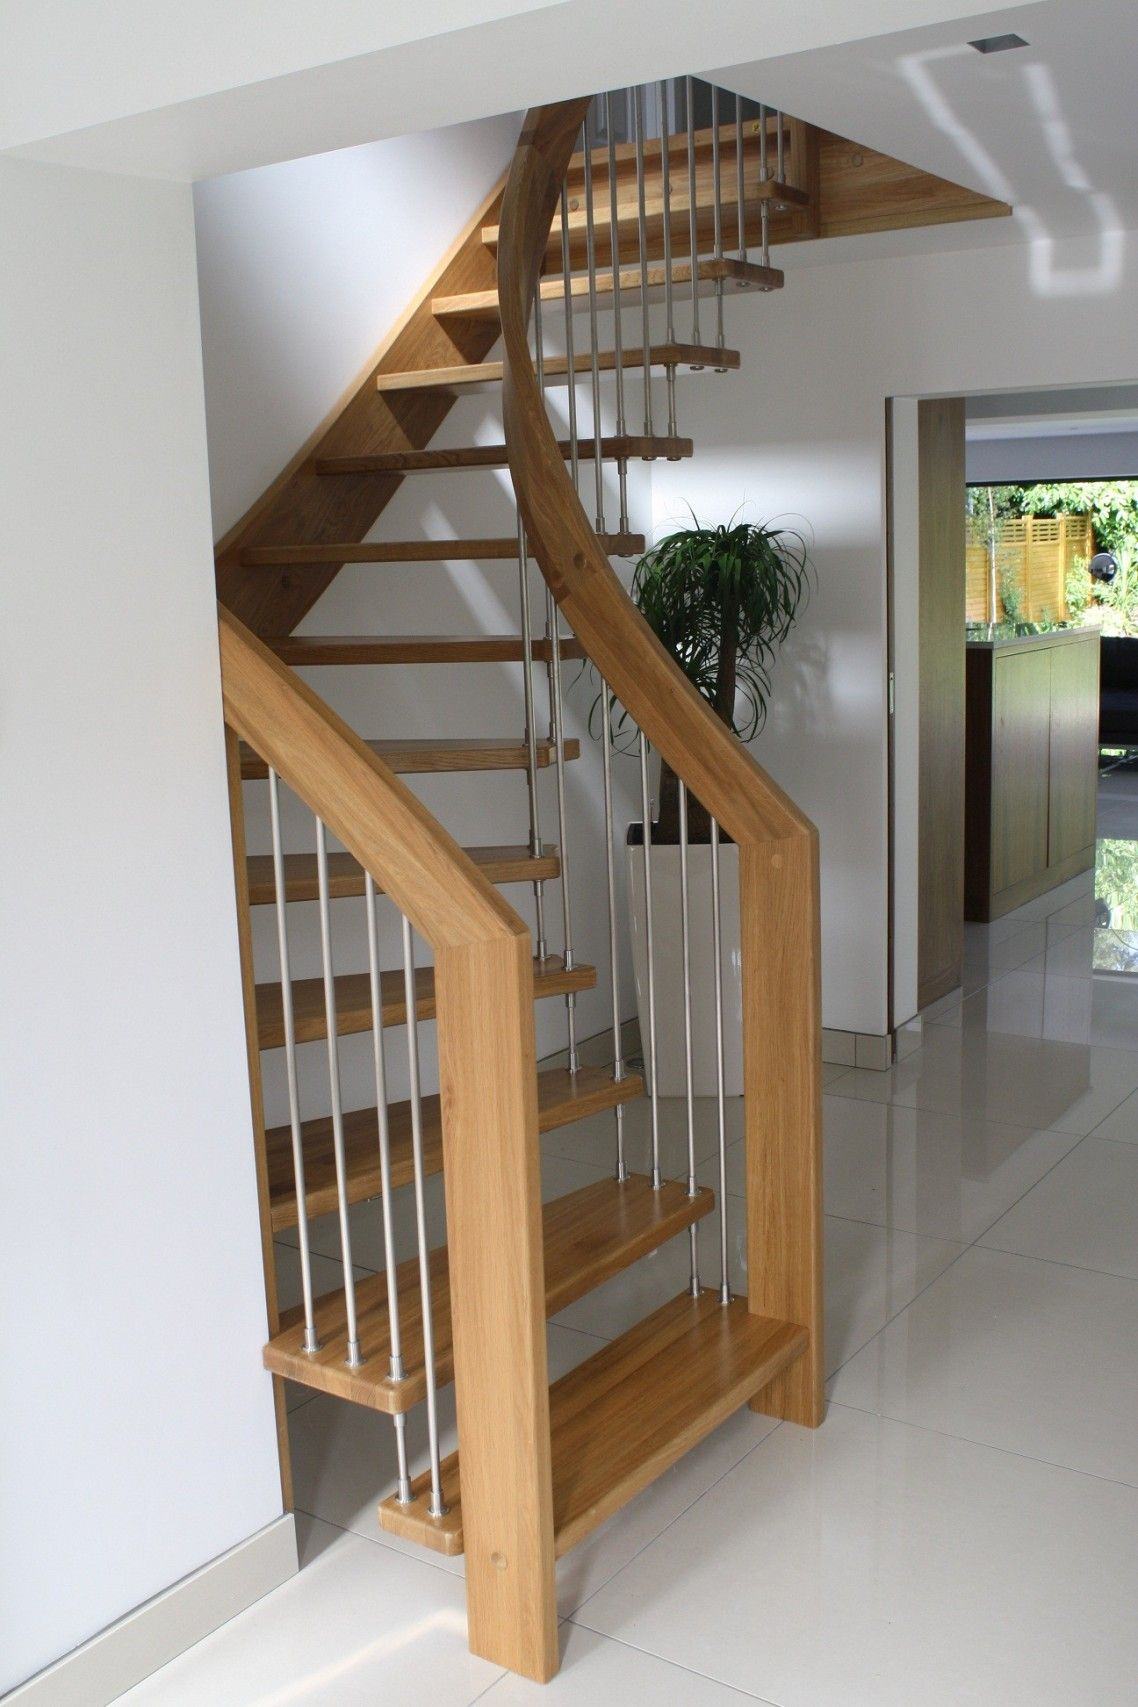 Alluring Design Ideas Of Small Space Staircase With Brown Wooden